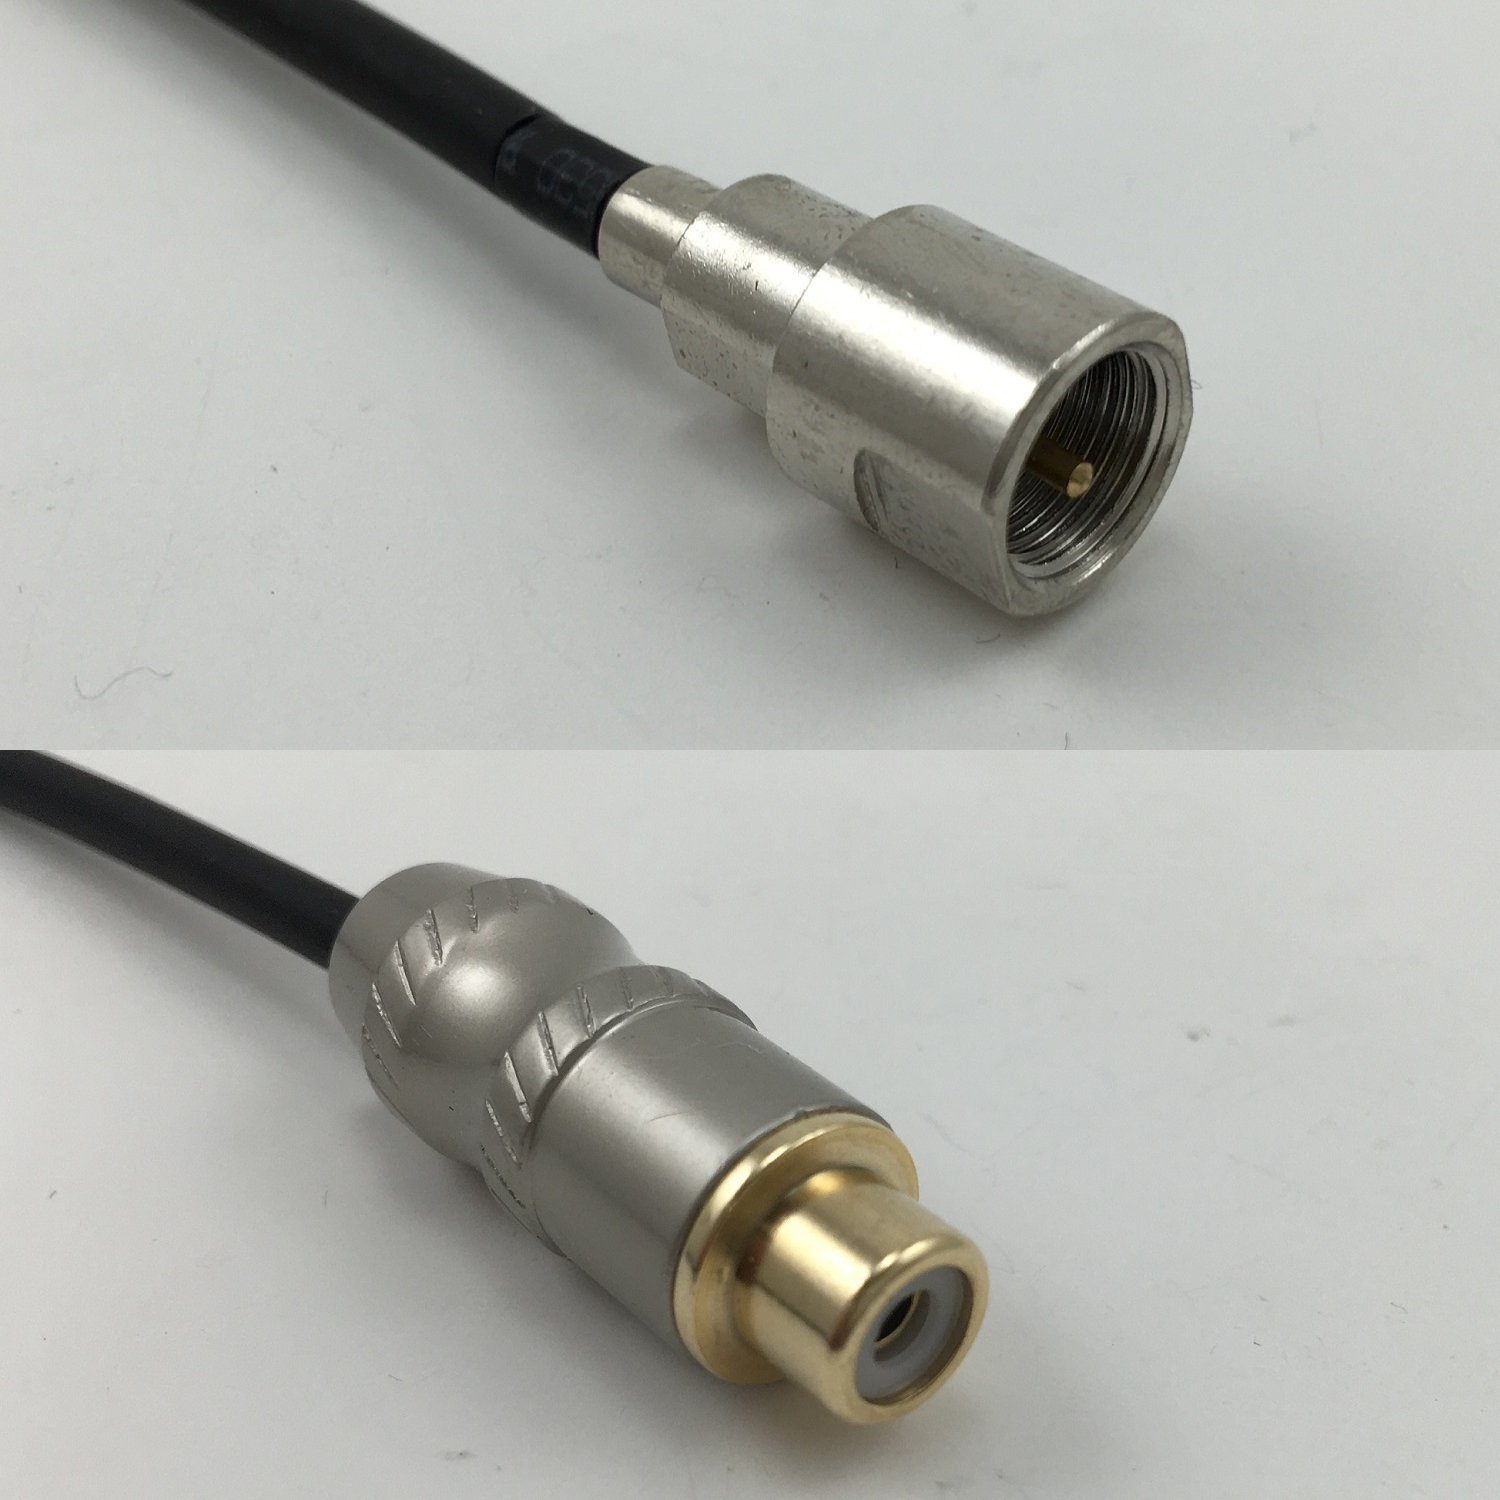 6 inch RG174 FME MALE to RCA FEMALE Pigtail Jumper RF coaxial cable 50ohm High Quality Quick USA Shipping